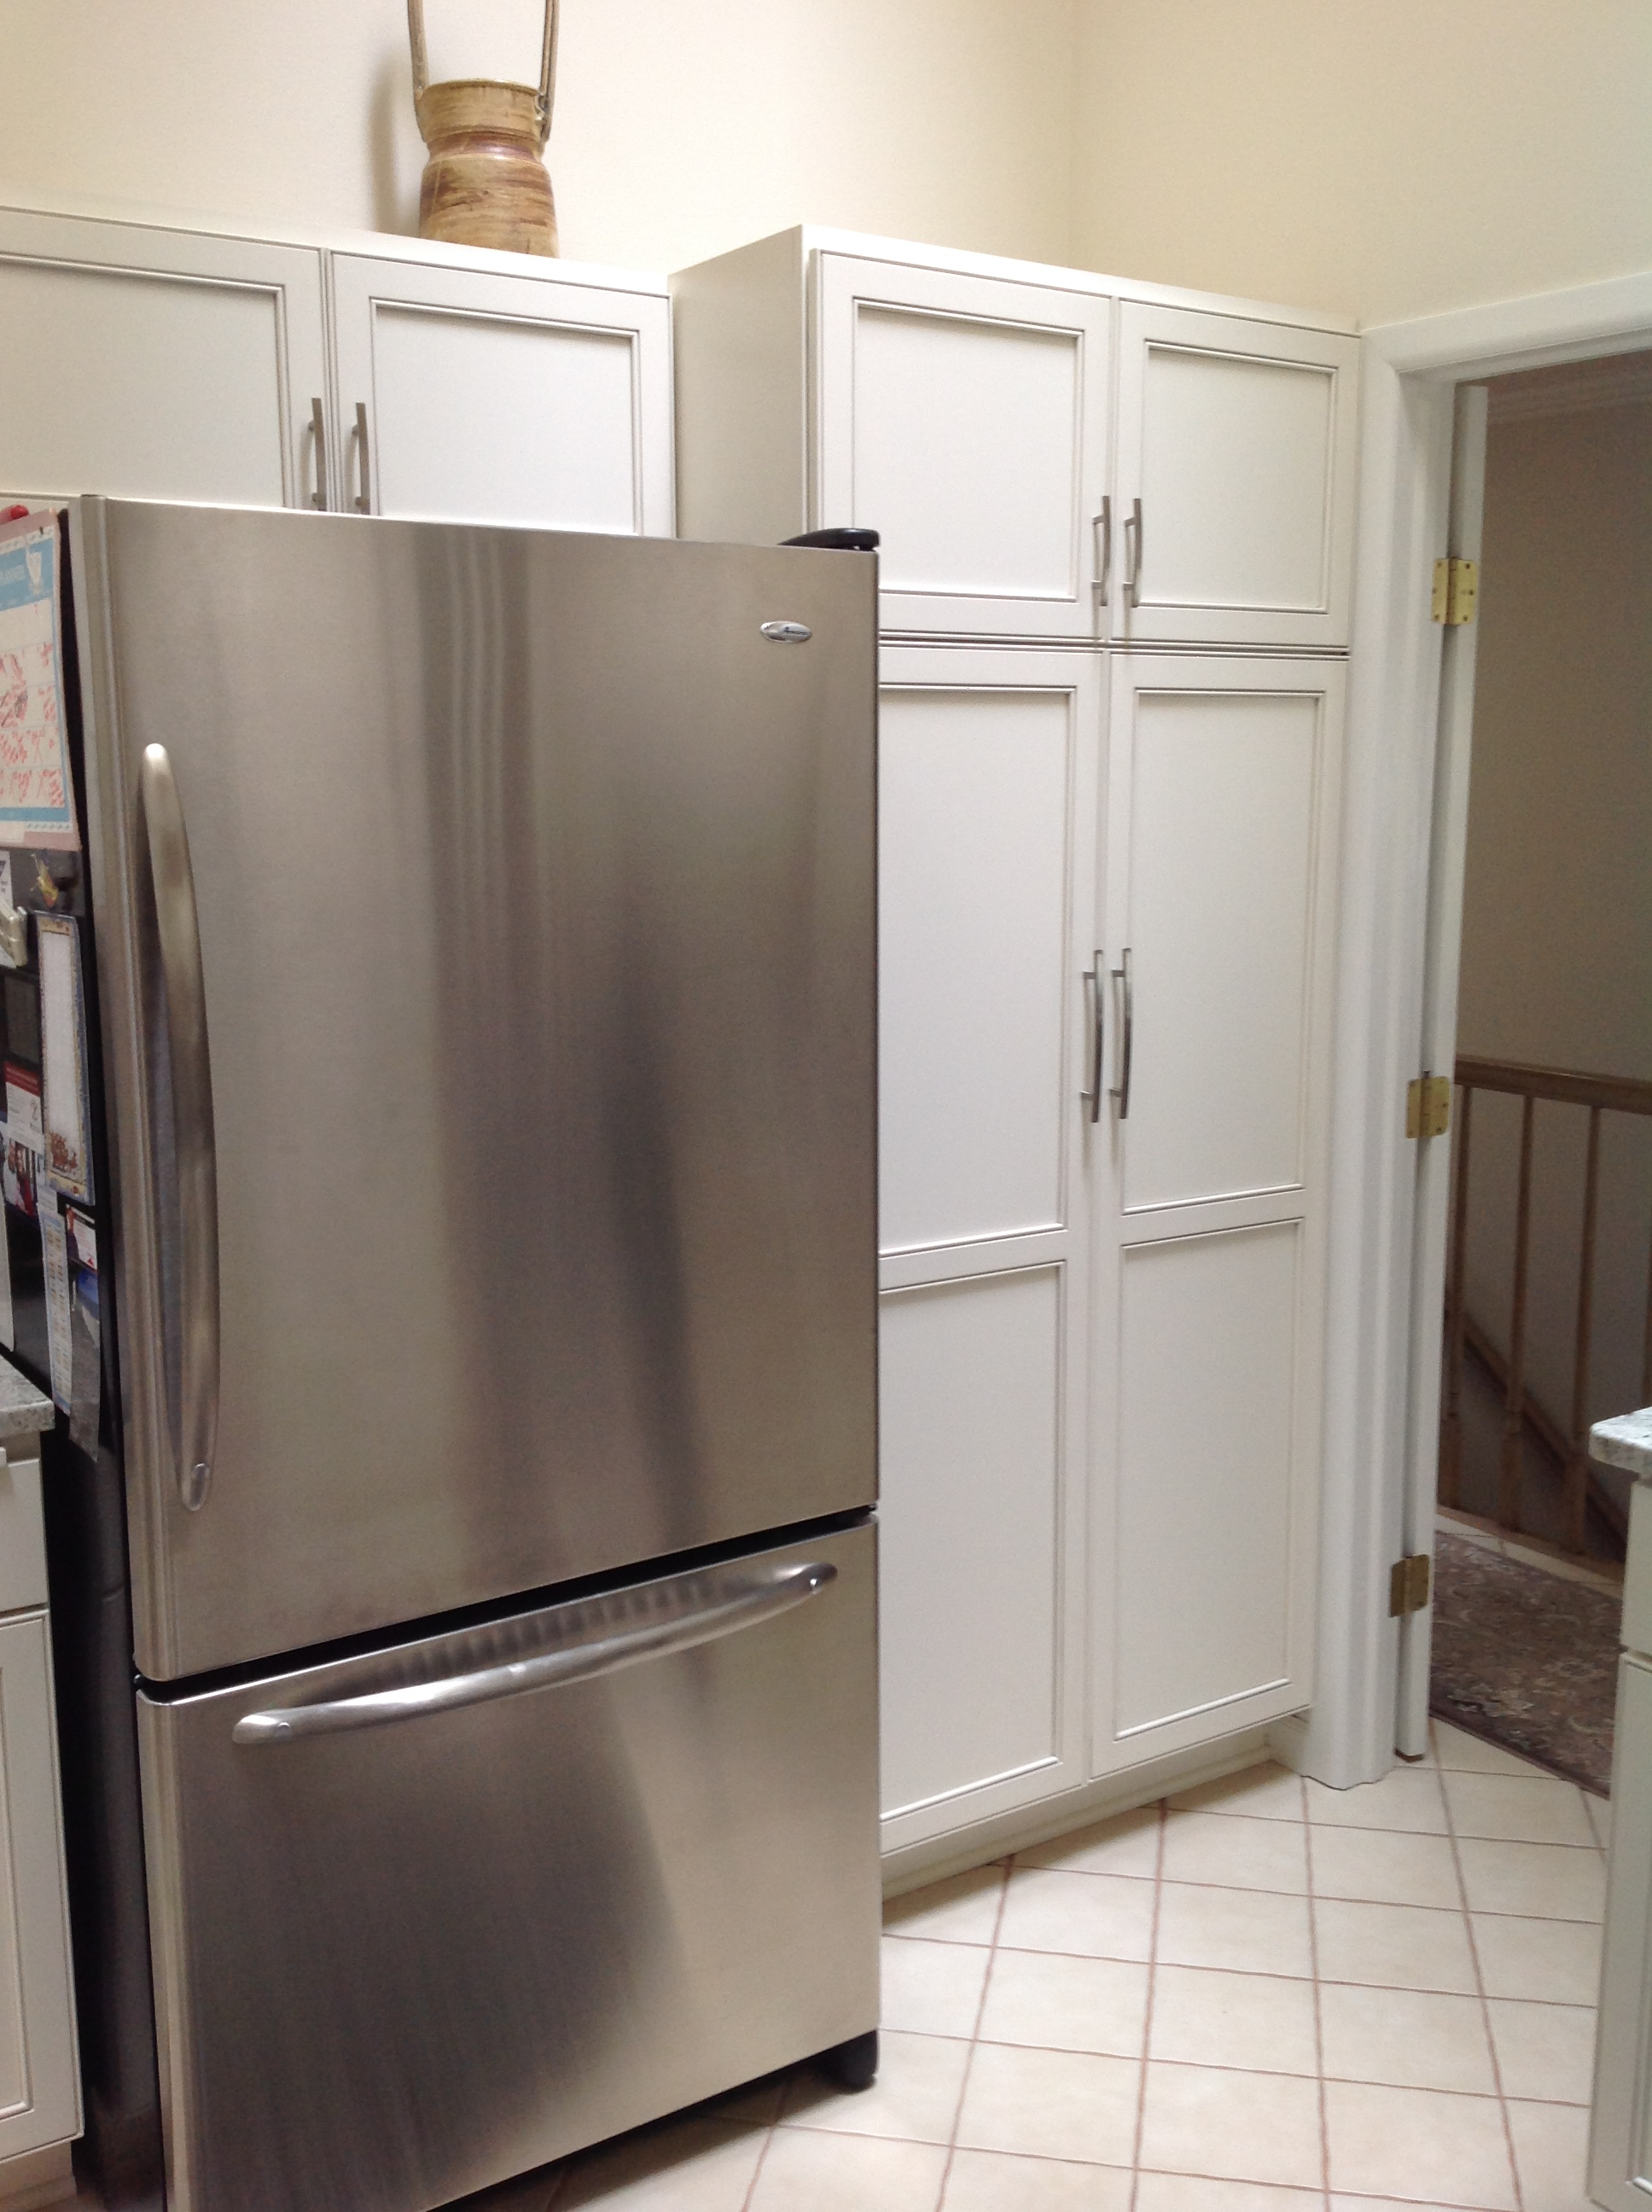 Refrig and pantry area